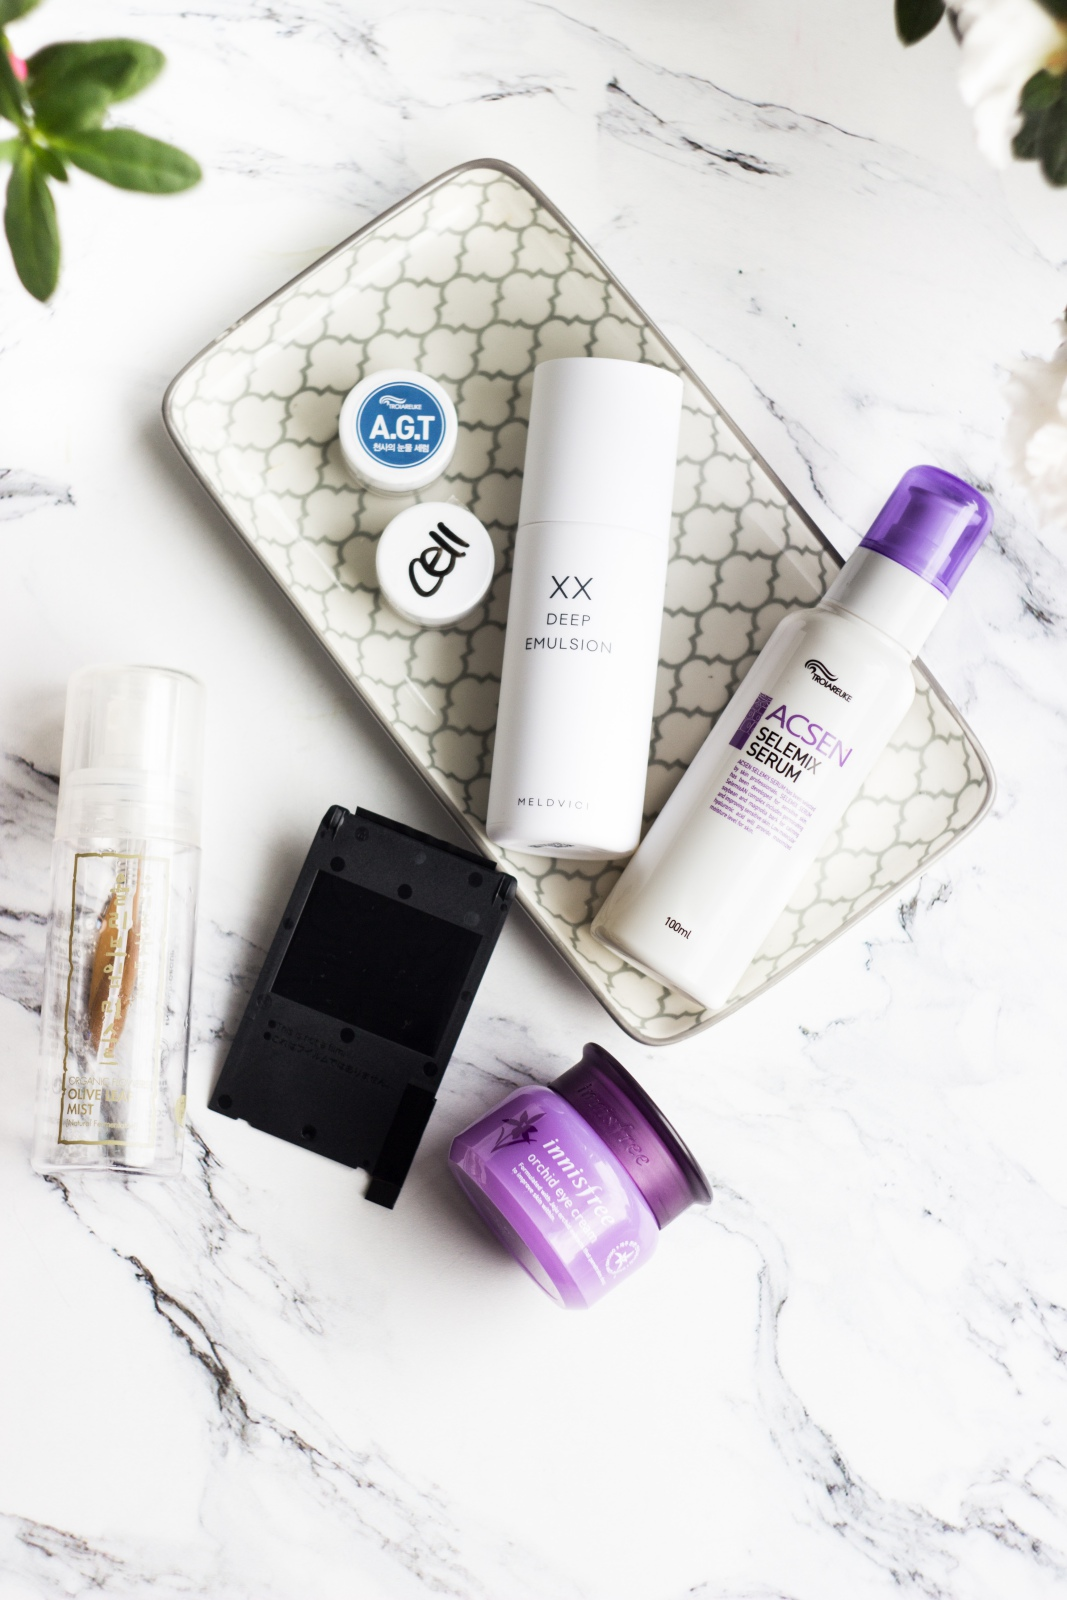 BBCosmetic Black Friday  2018: Save on Korean beauty brands like Troiareuke, VT, Vprove and more. Find more deals and promocodes on Kherblog.com